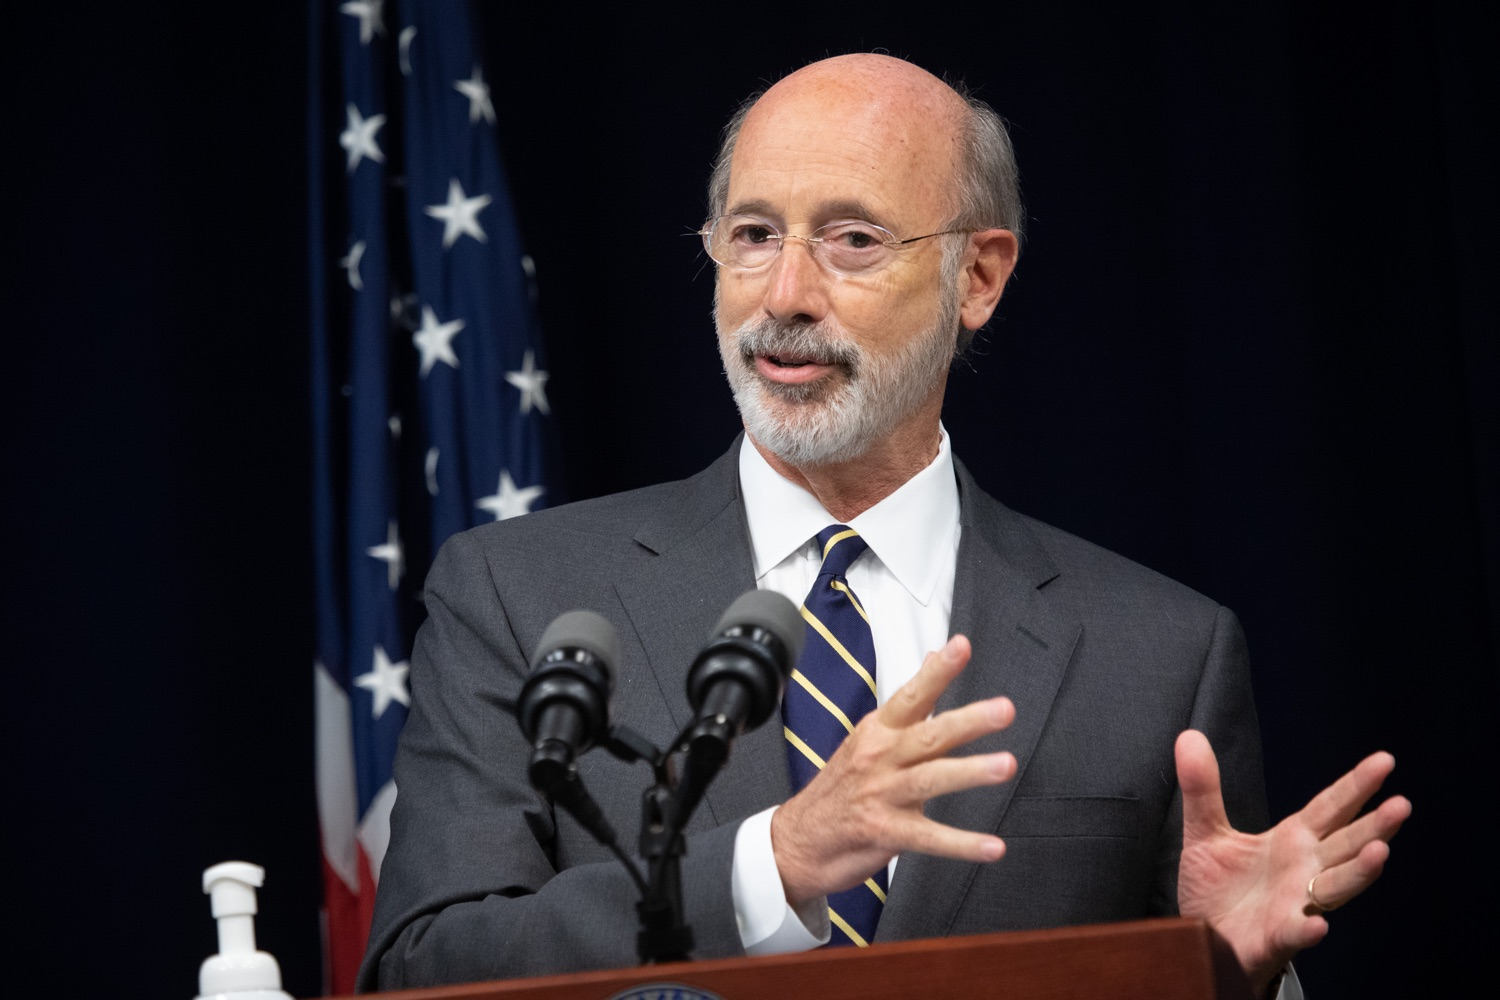 "<a href=""https://filesource.wostreaming.net/commonwealthofpa/photo/18141_gov_sb637_bill_signing_dz_07.jpg"" target=""_blank"">⇣ Download Photo<br></a>Pennsylvania Governor Tom Wolf speaking with the press.  Building on his criminal justice reforms and fulfilling a recommendation to modernize job licensing, Governor Tom Wolf today signed Senate Bill 637, which removes outdated licensing barriers so skilled workers with criminal records can get a second chance and start good careers. The governor has advocated for sweeping changes to the licensing process for years. Harrisburg, PA  July 1, 2020"